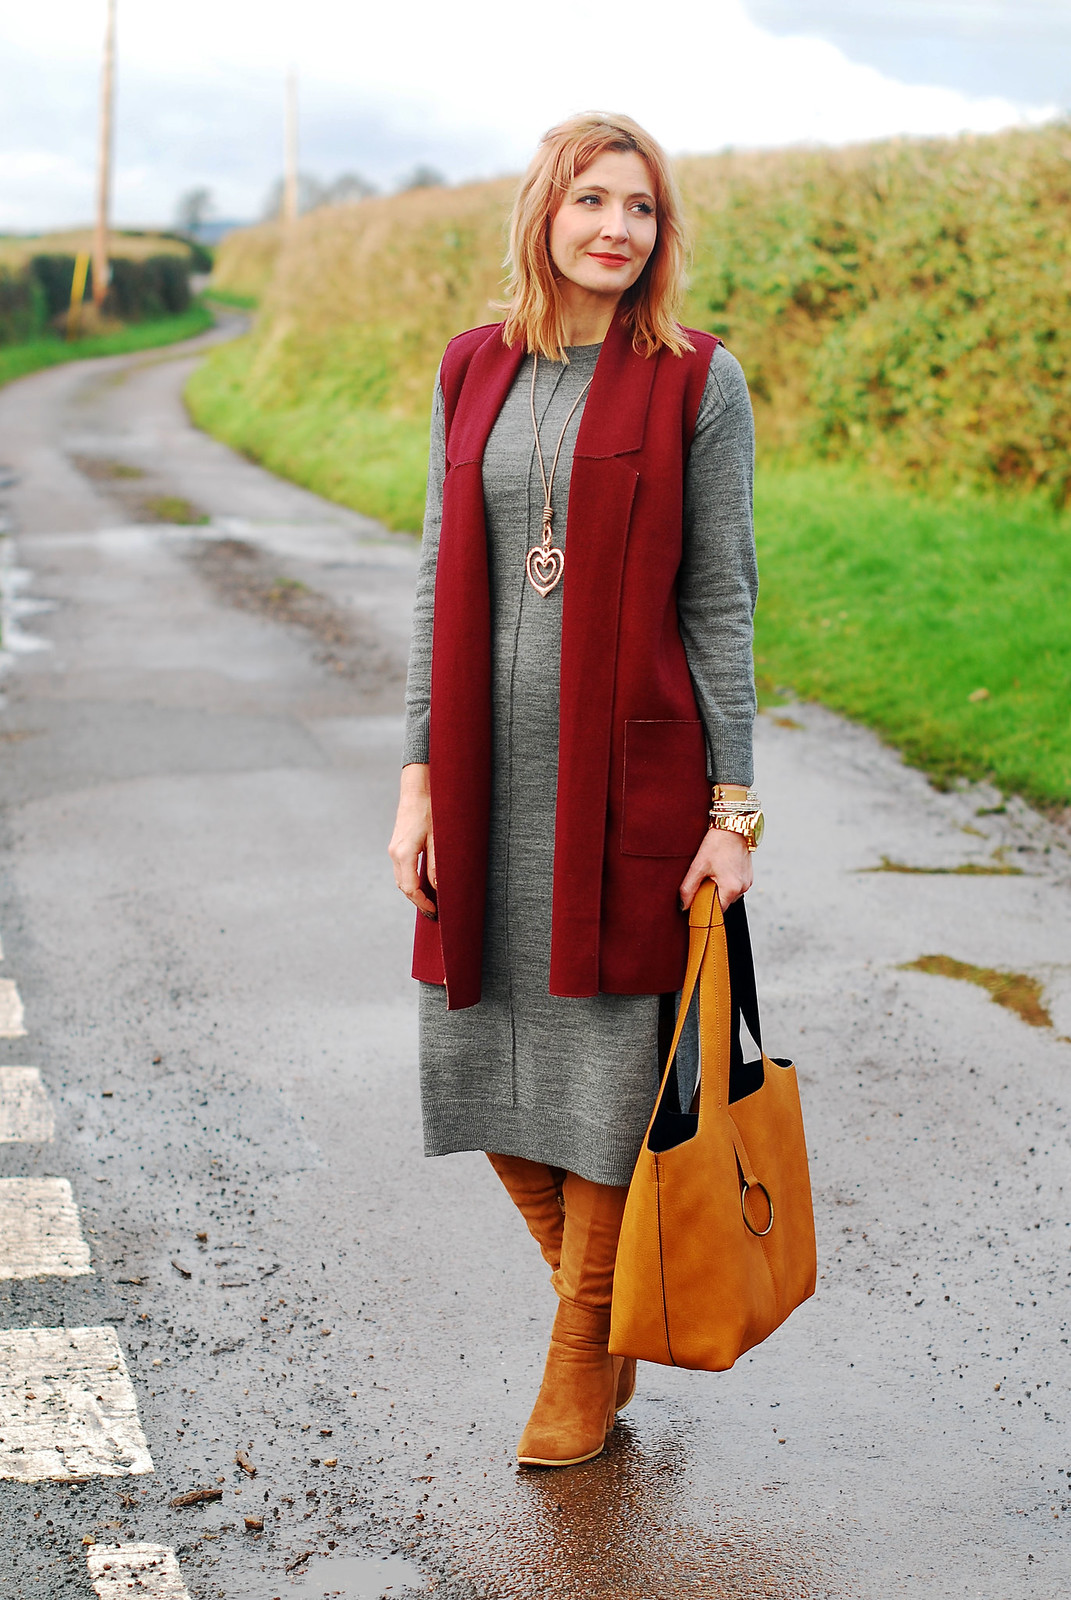 Winter layers: Burgundy sleeveless coatigan  grey midi sweater dress  tan over the knee (OTK) boots  ochre slouch hobo bag  rose gold heart pendant | Not Dressed As Lamb, over 40 style blog